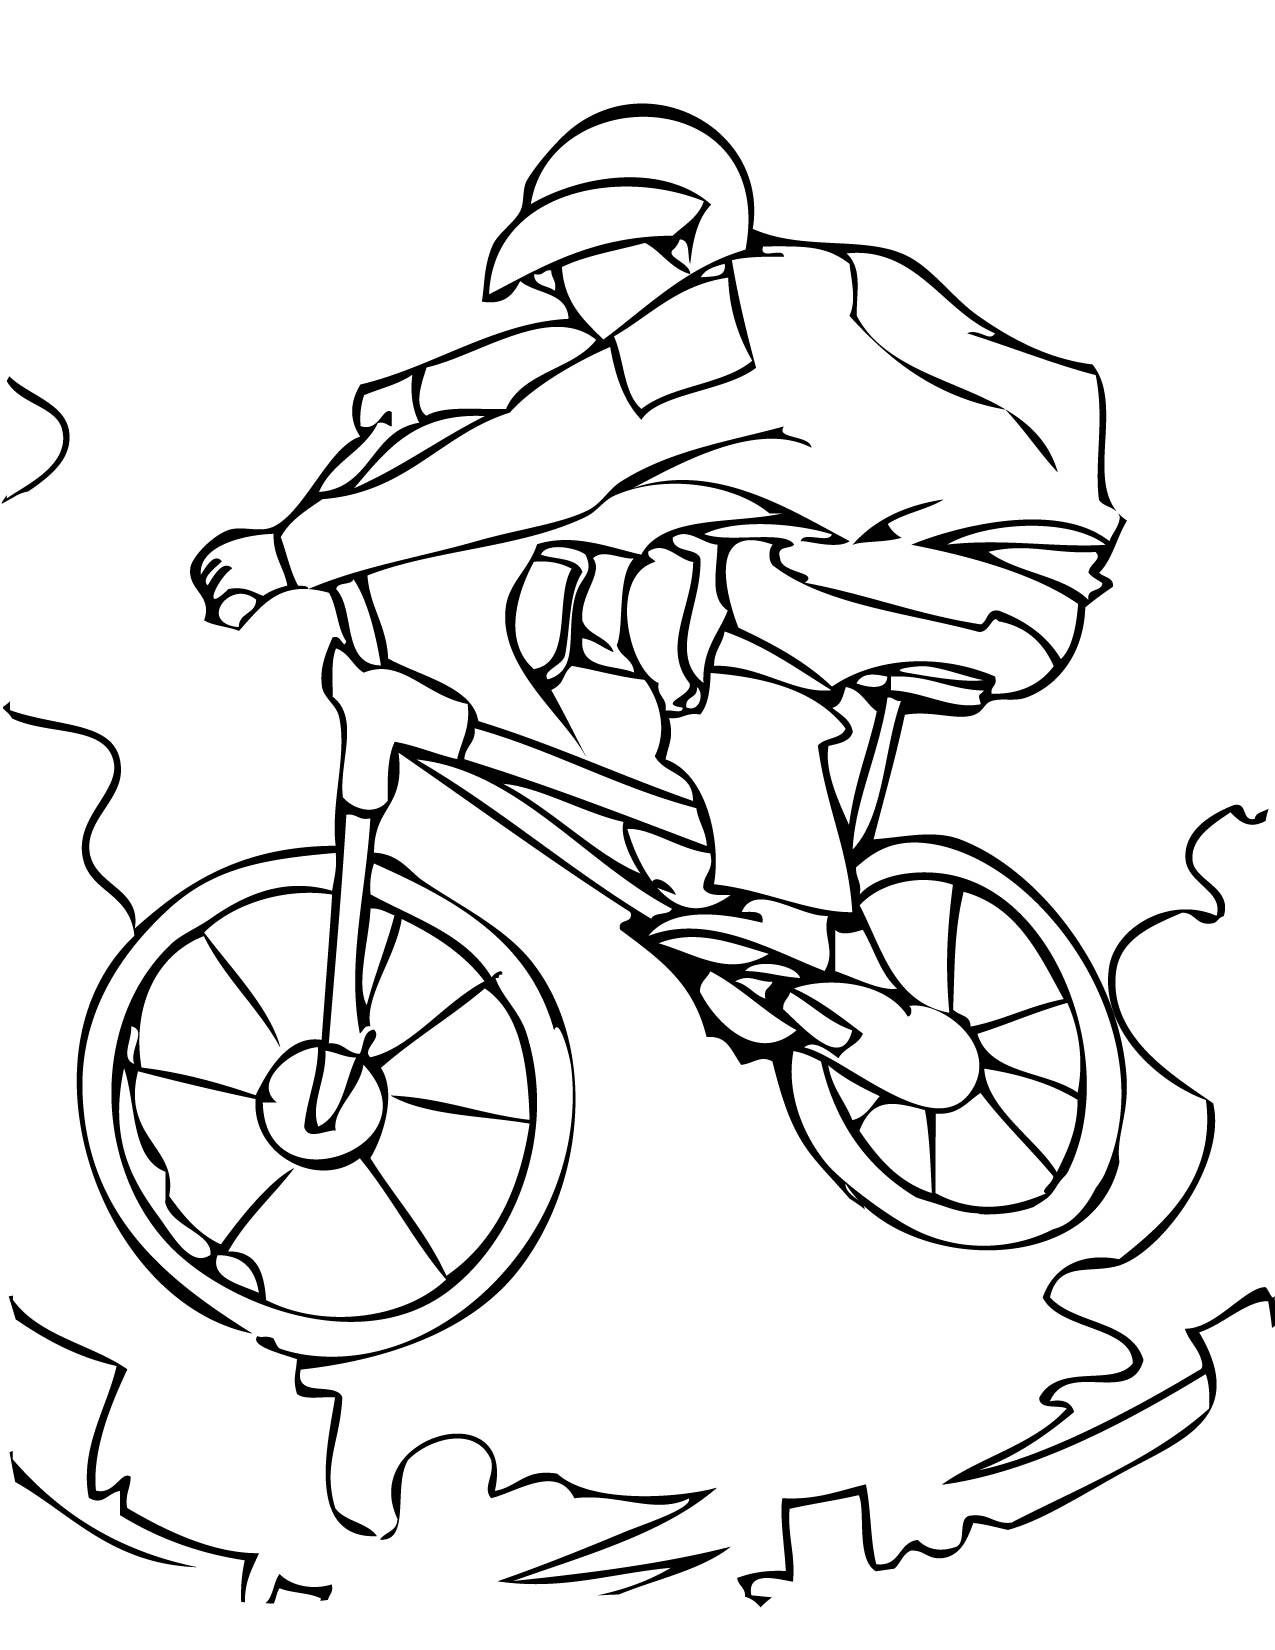 Best ideas about Sports Printable Coloring Pages . Save or Pin Free Printable Basket Sports Coloring Pages Gianfreda Now.